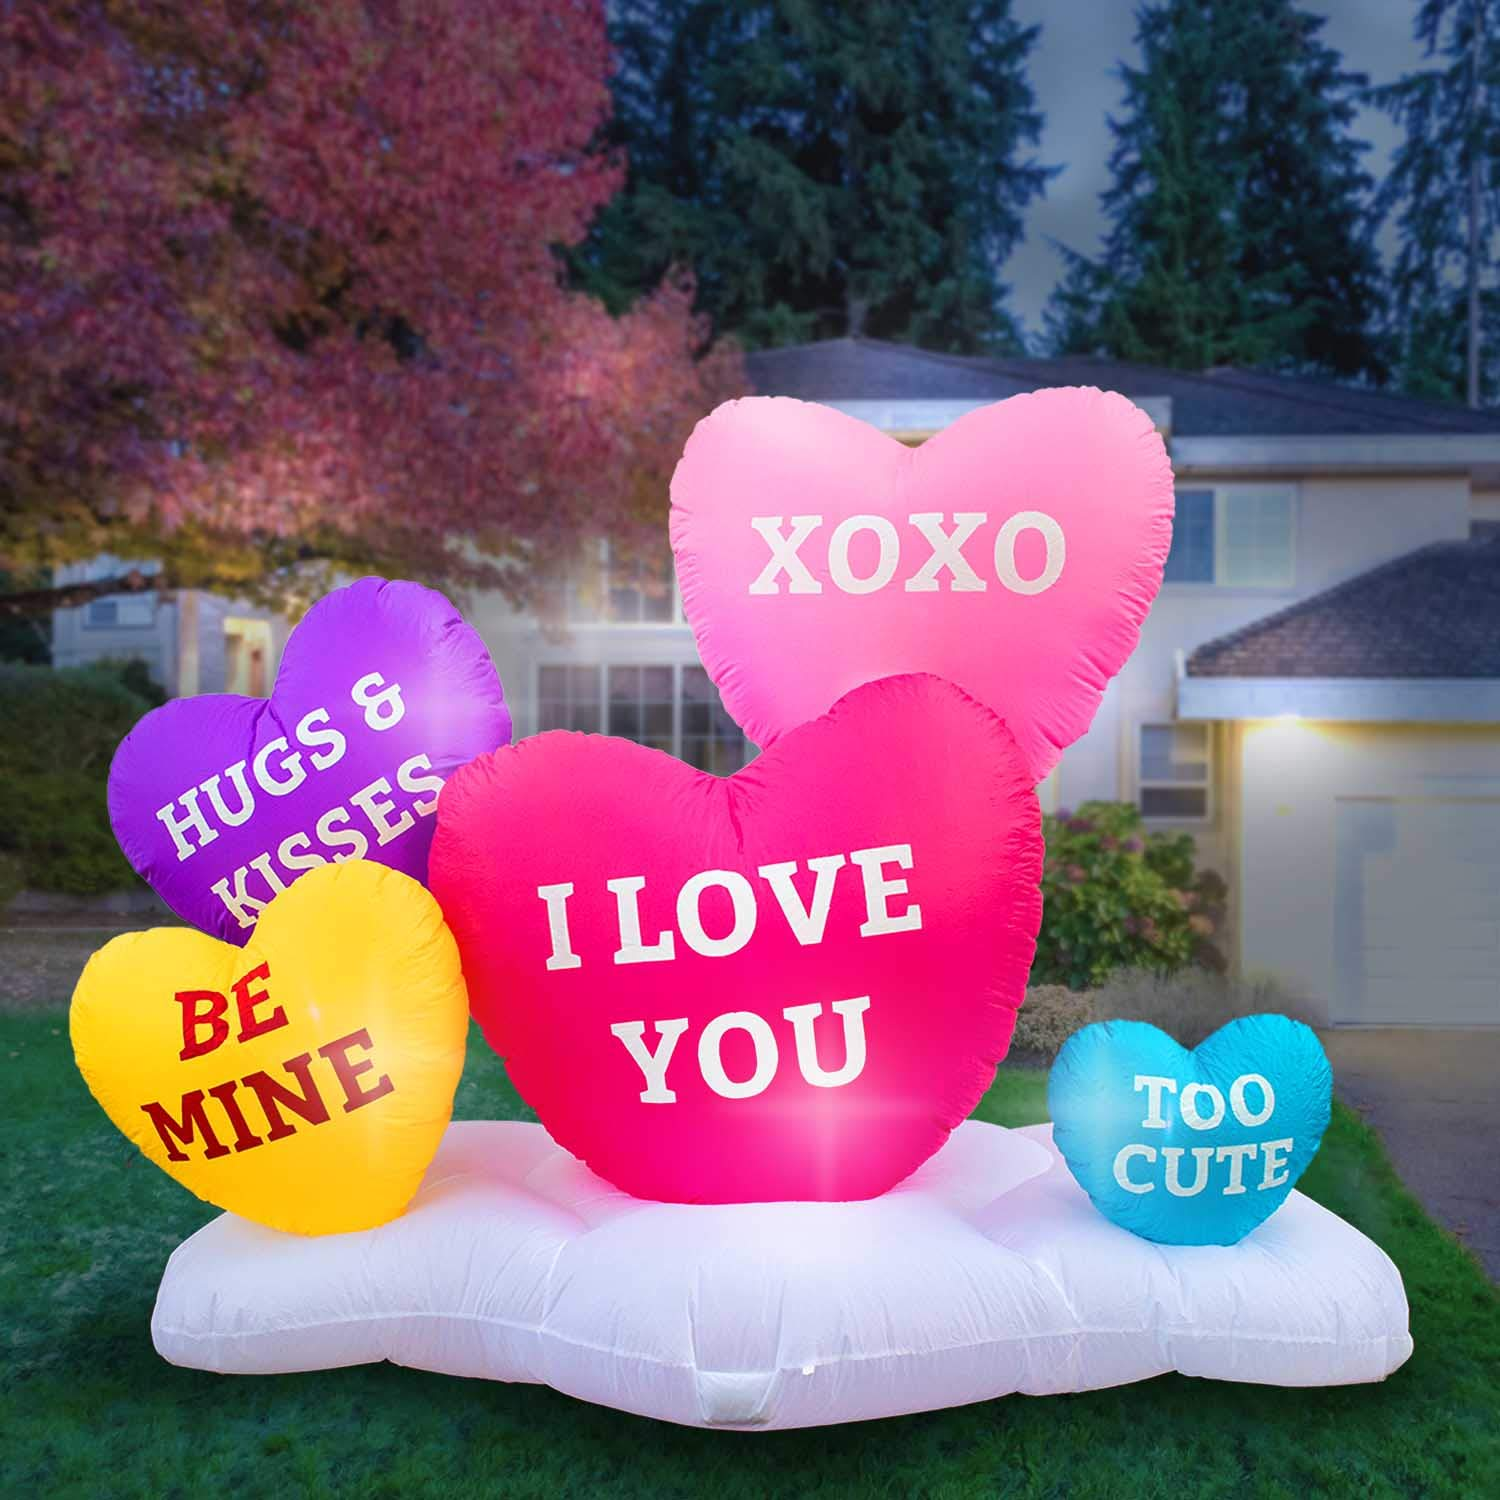 6df944e51c32e Holidayana 8 Foot Inflatable Hearts Decoration, Outdoor Yard Decor,  Includes Built-in Bulbs, Tie-Down Points, and Powerful Built in Fan